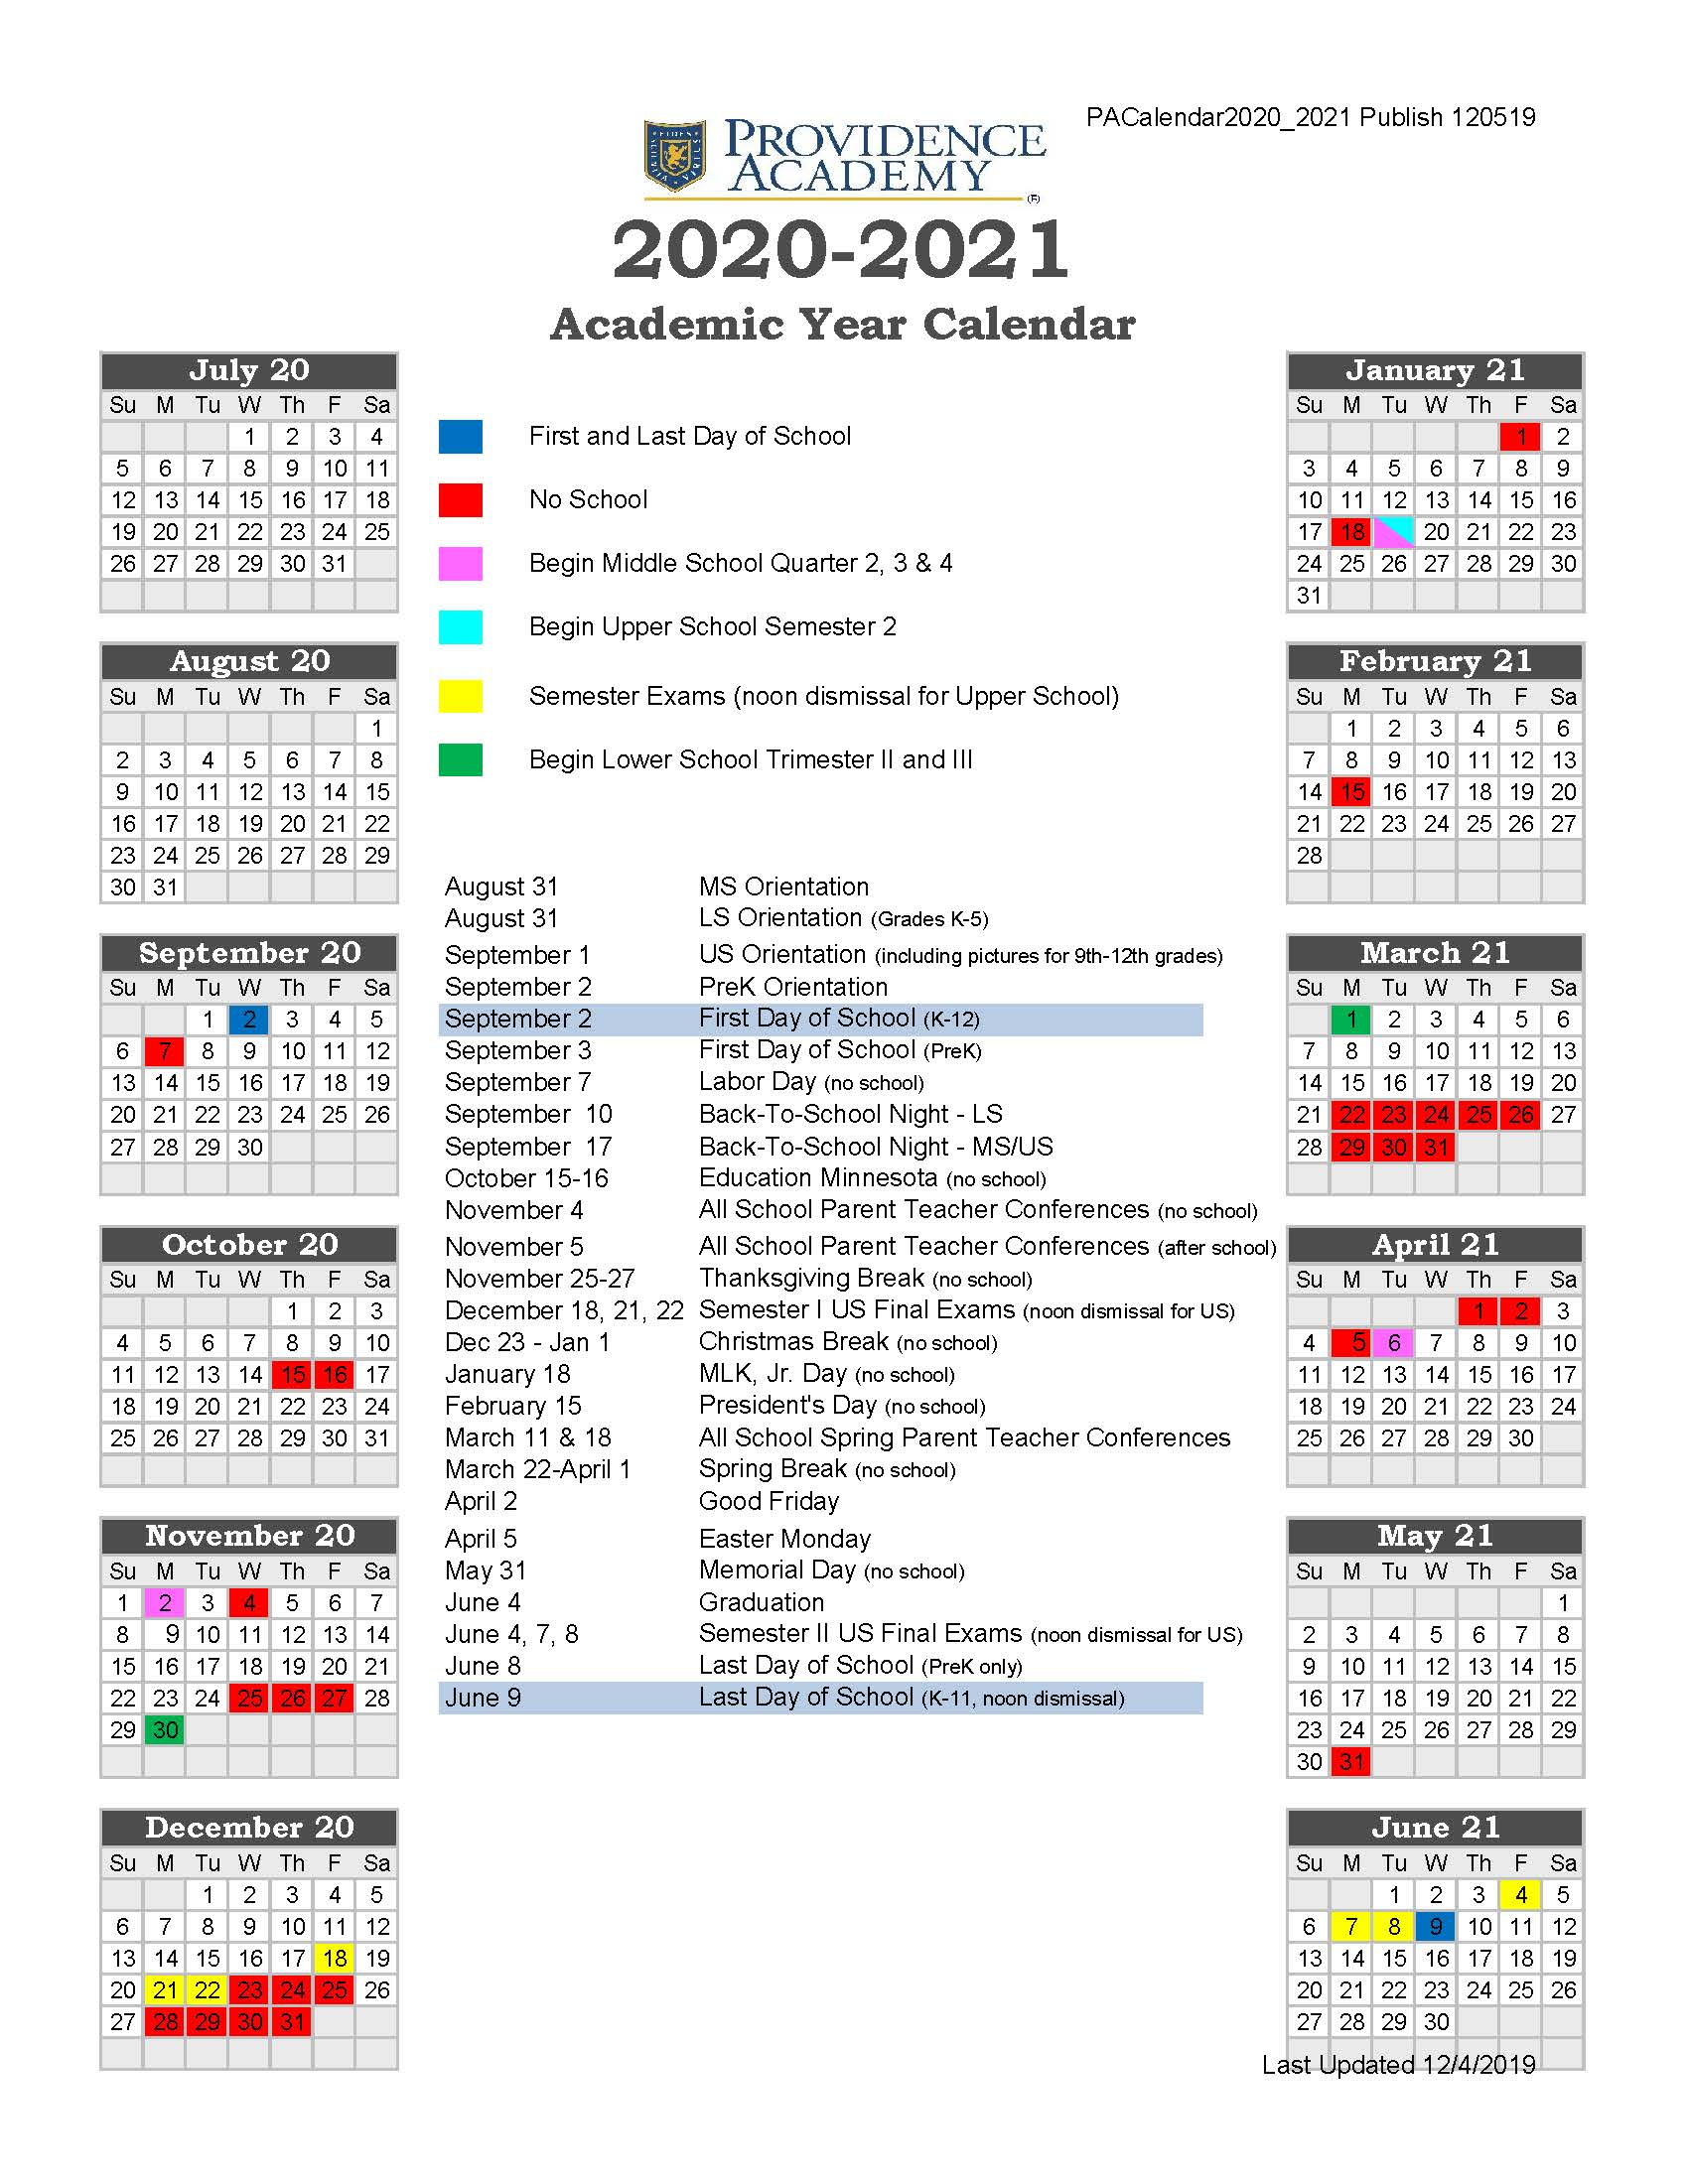 19 20 Providence Academy Academic Calendar 2020 2021 Intended For U Of M Twin Cities 2020 2021 Calendar